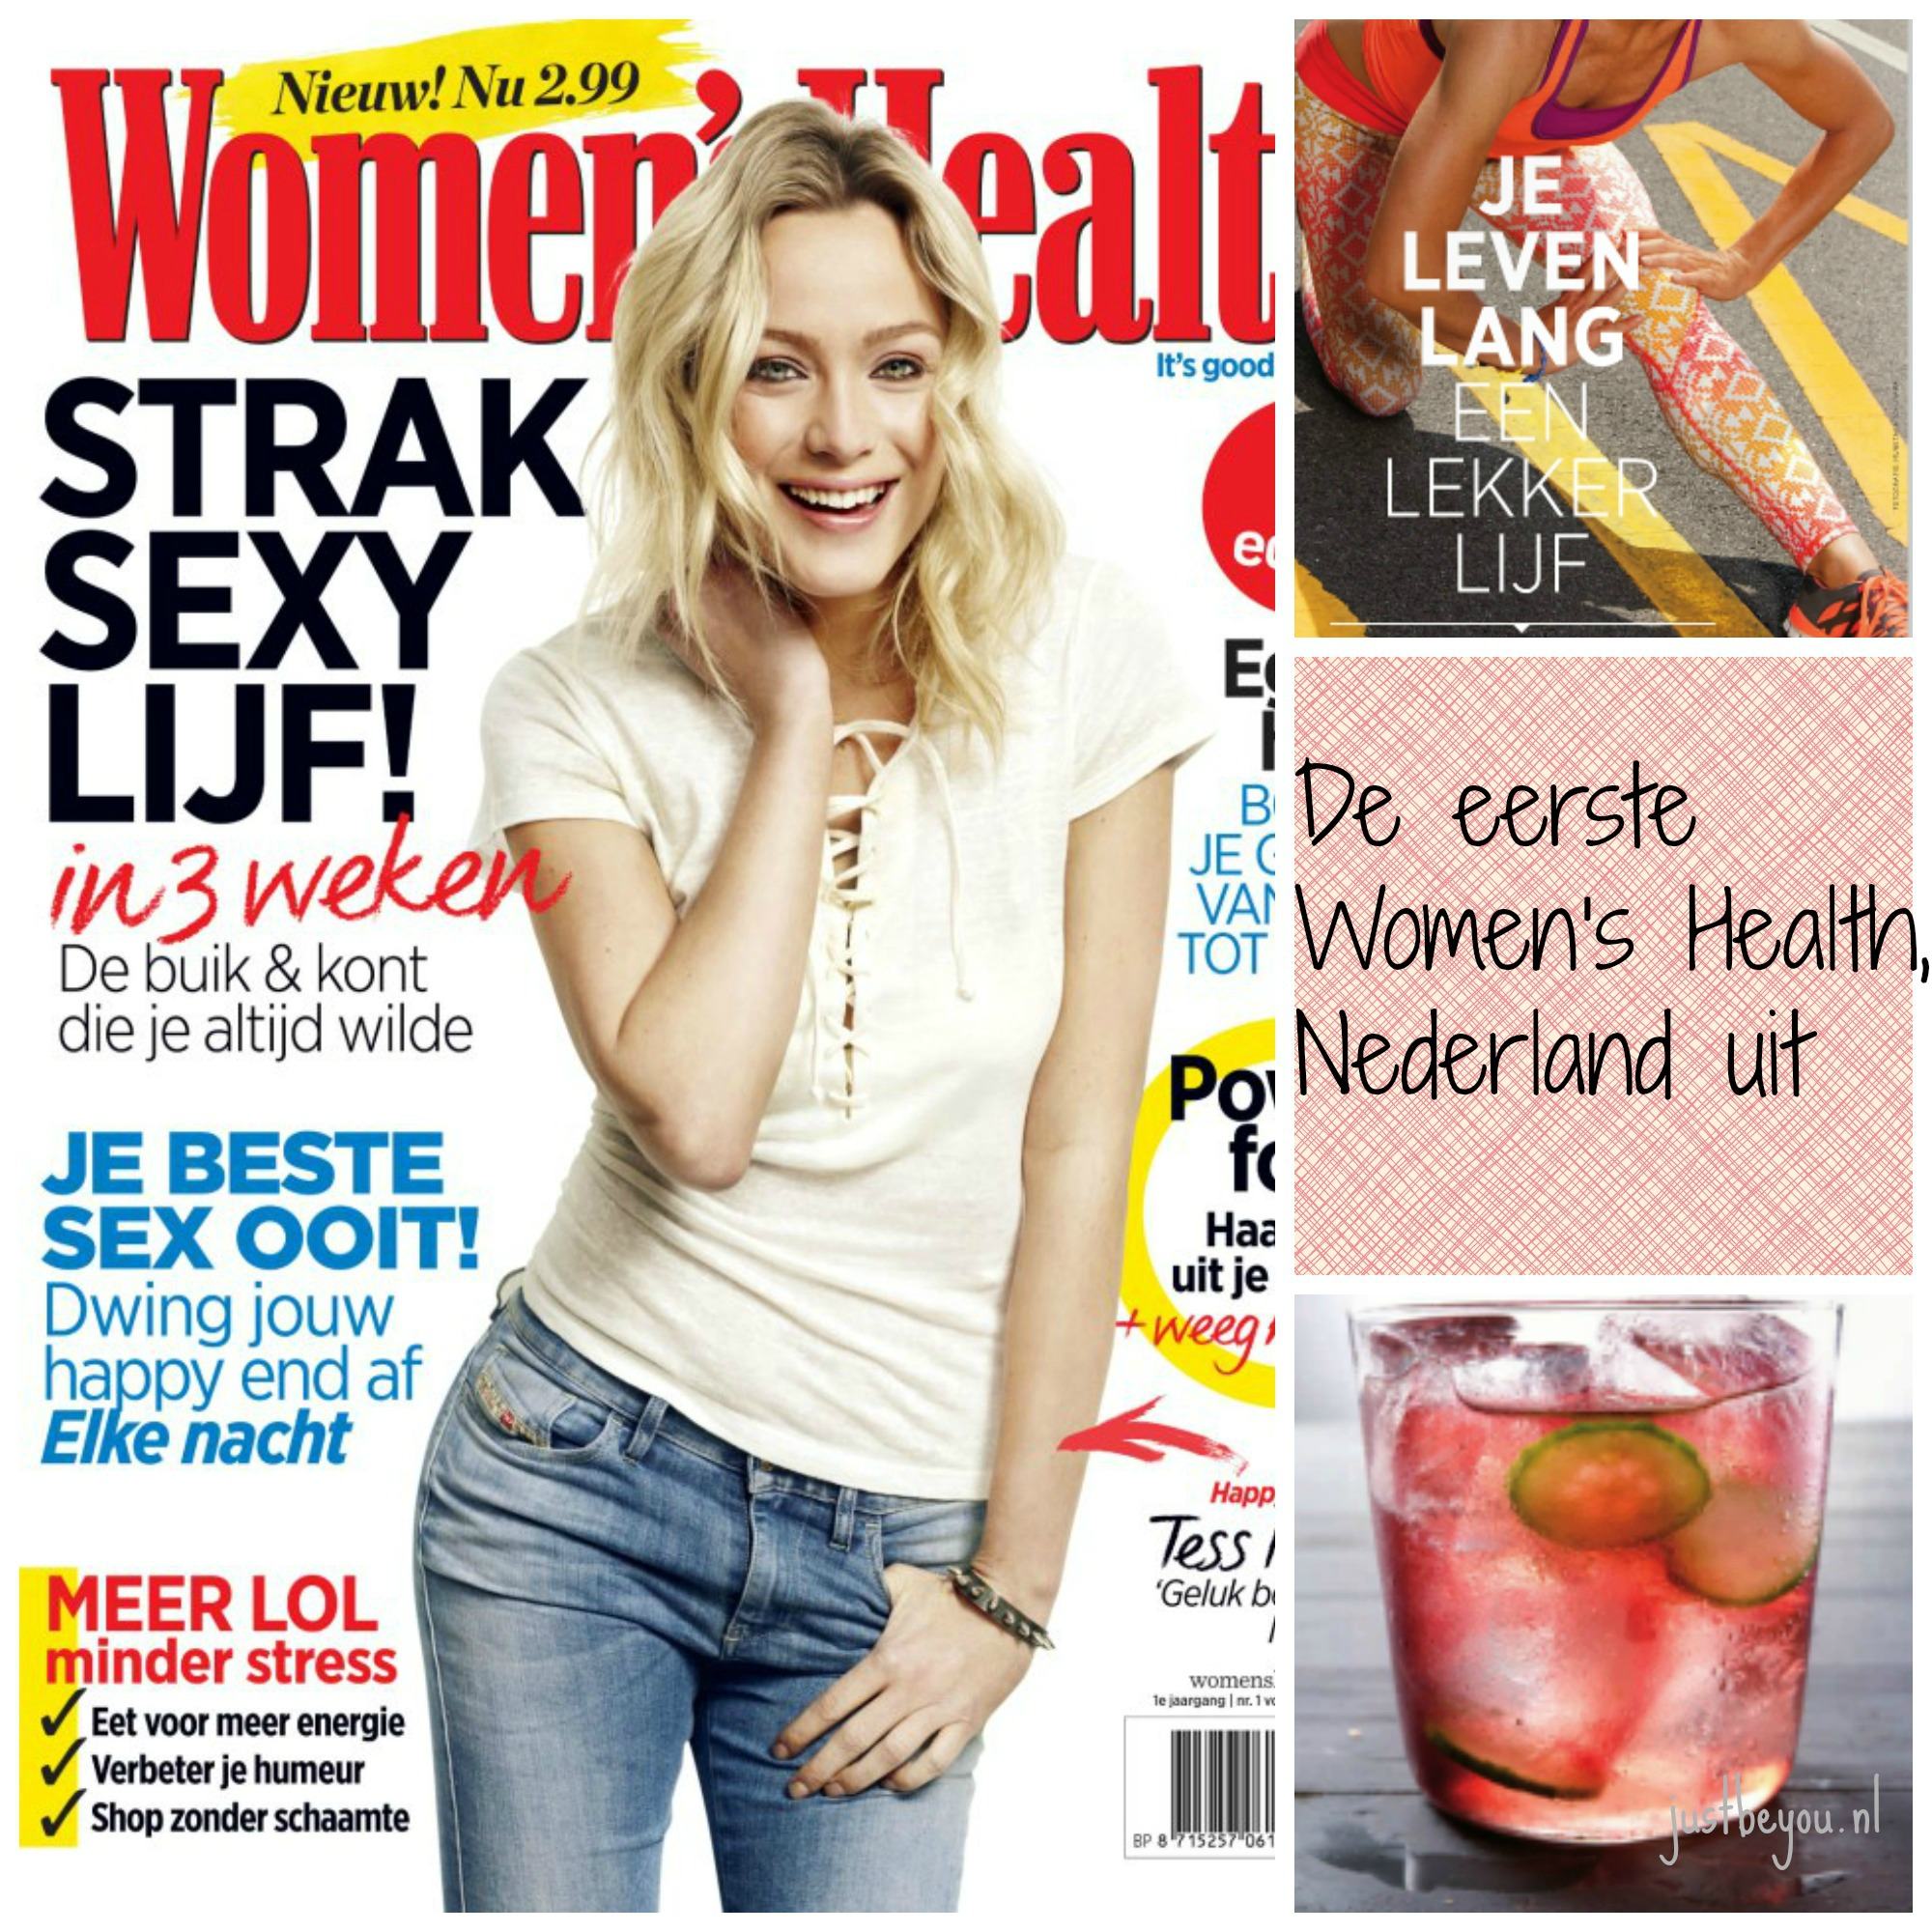 Women's Health Magazine Nederland